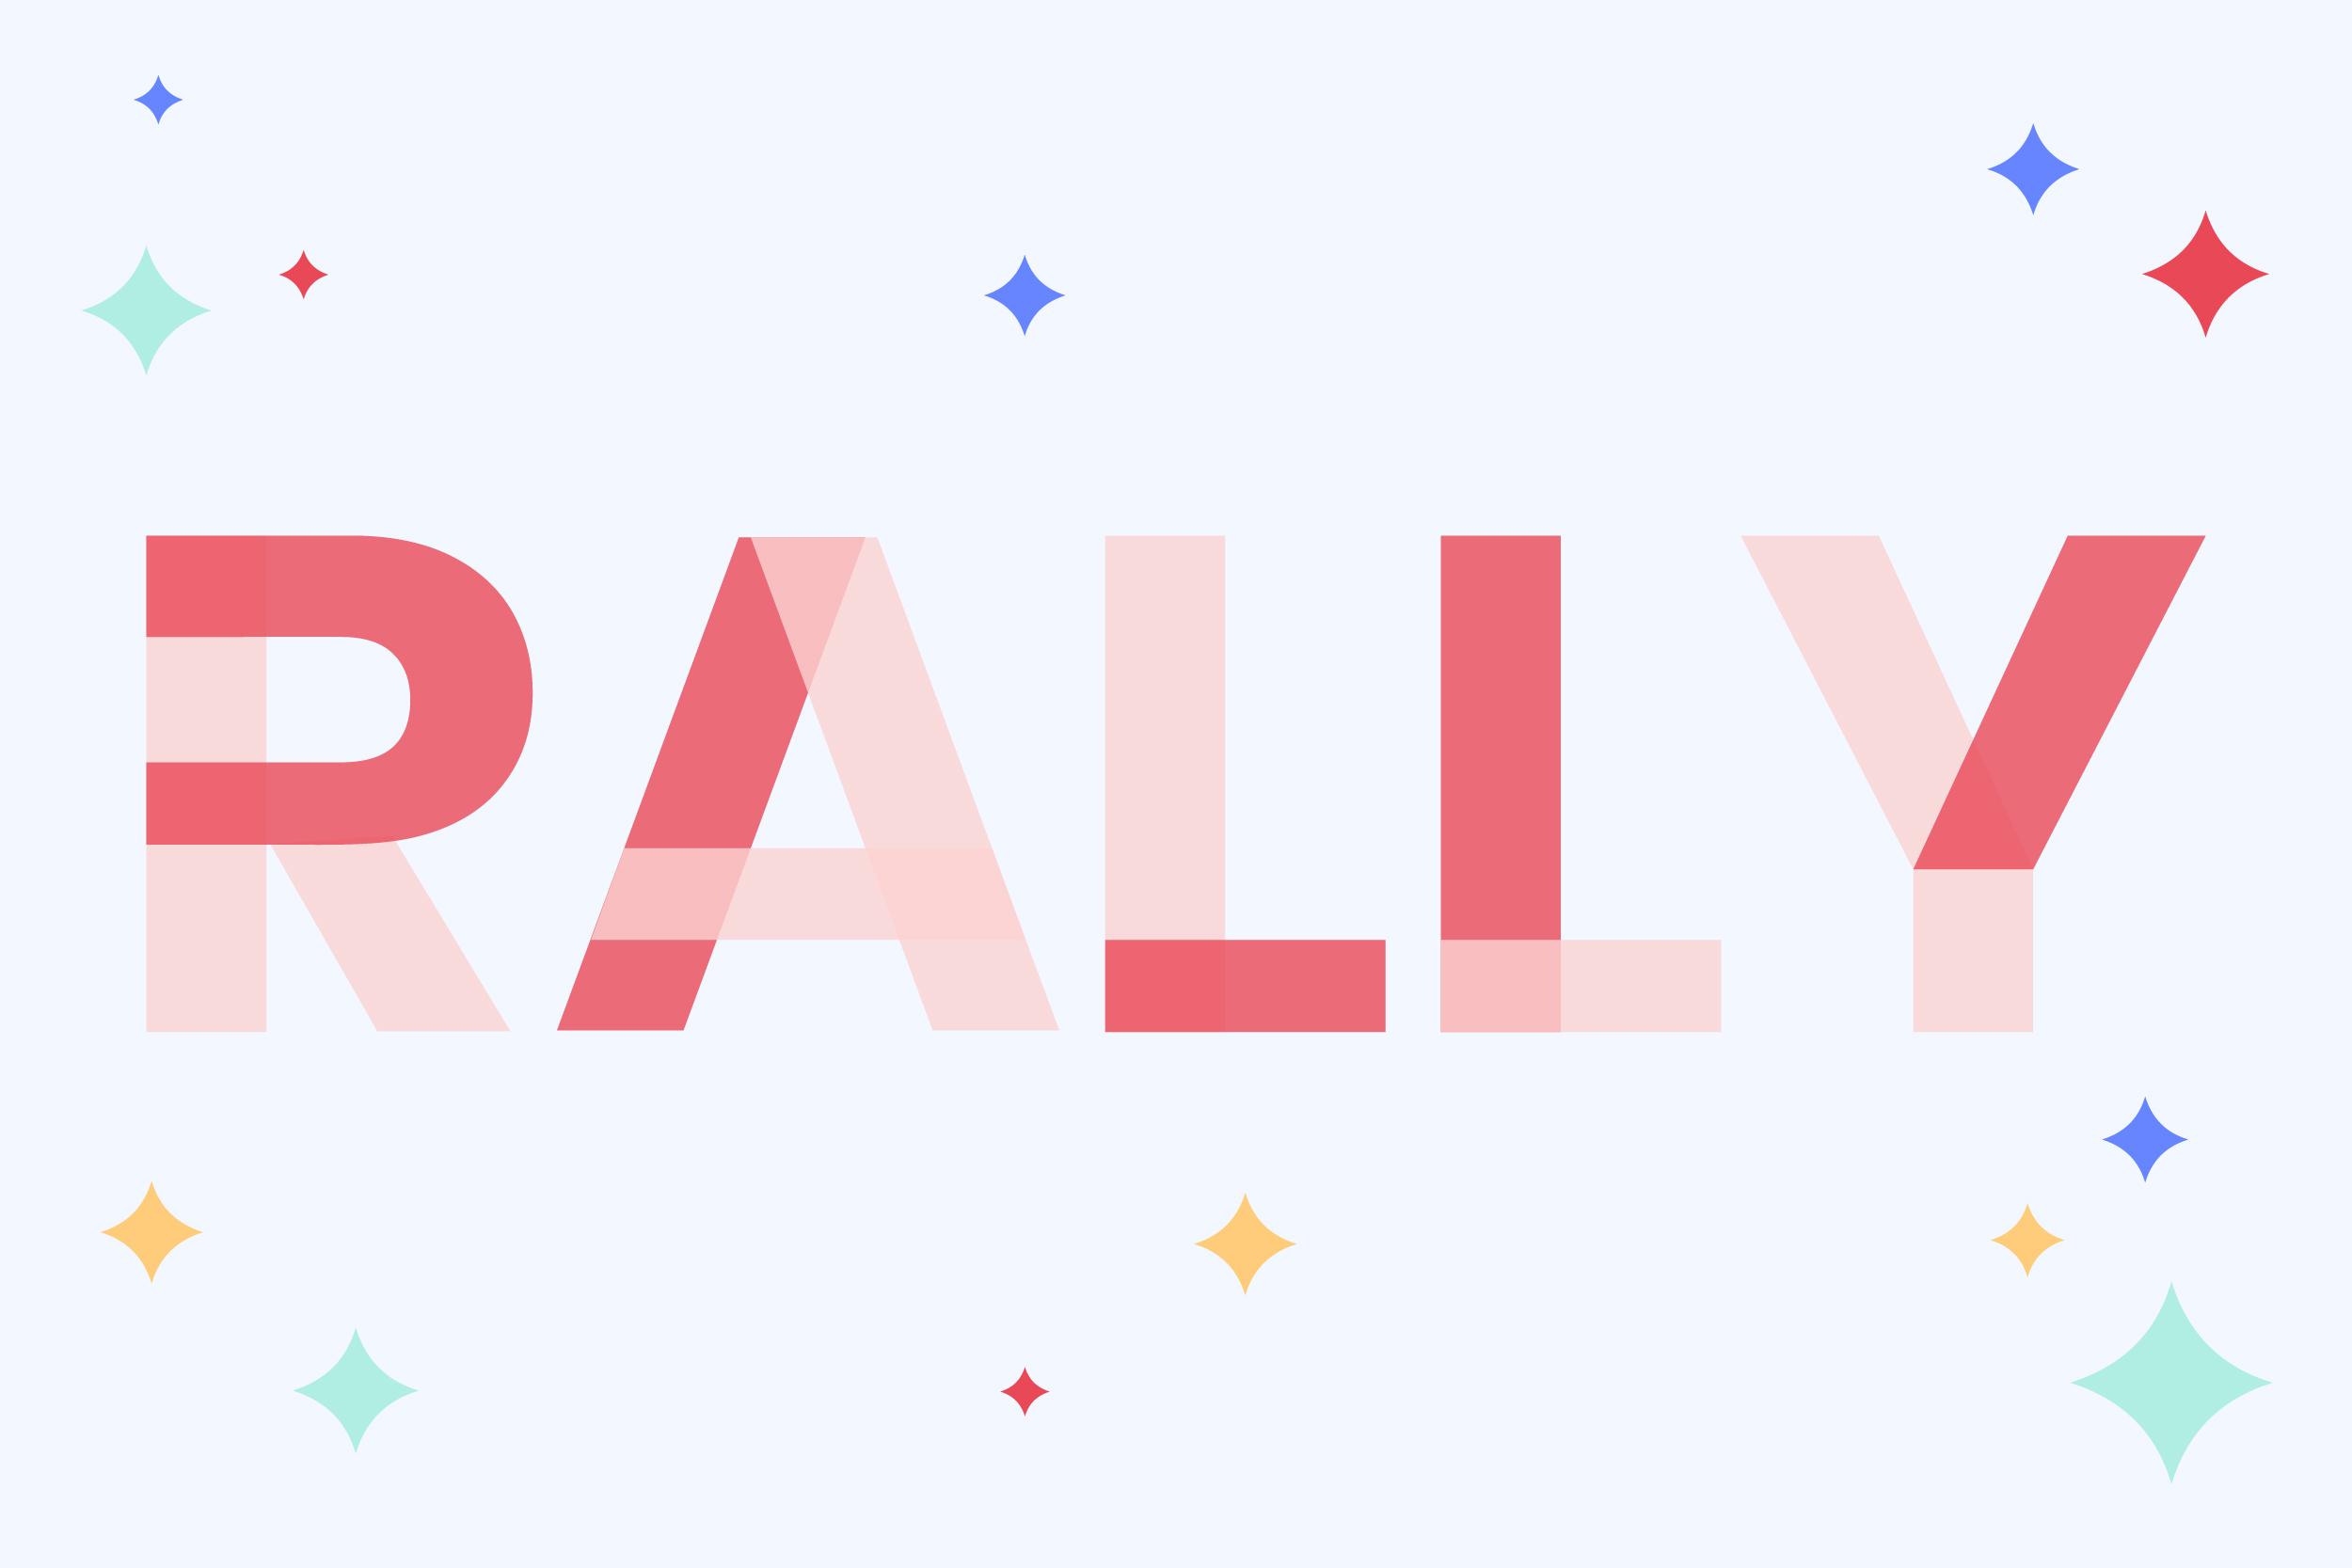 Are You Ready To Rally?